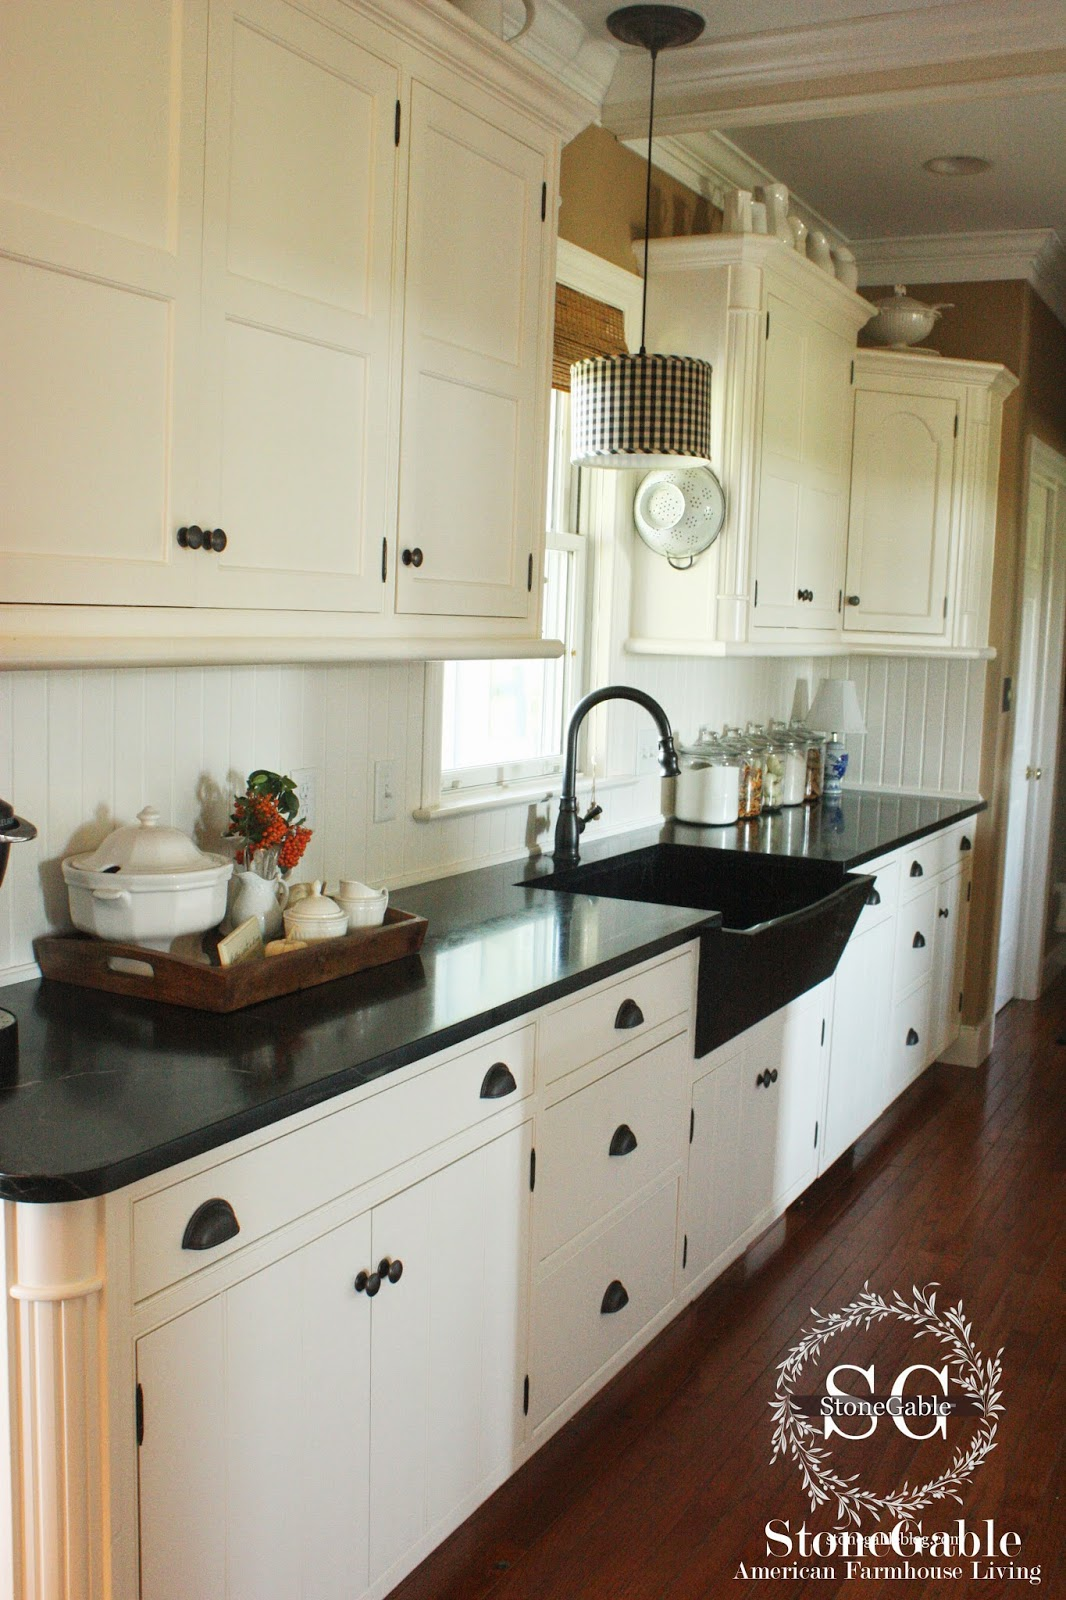 10 ELEMENTS OF A FARMHOUSE KITCHEN - StoneGable on